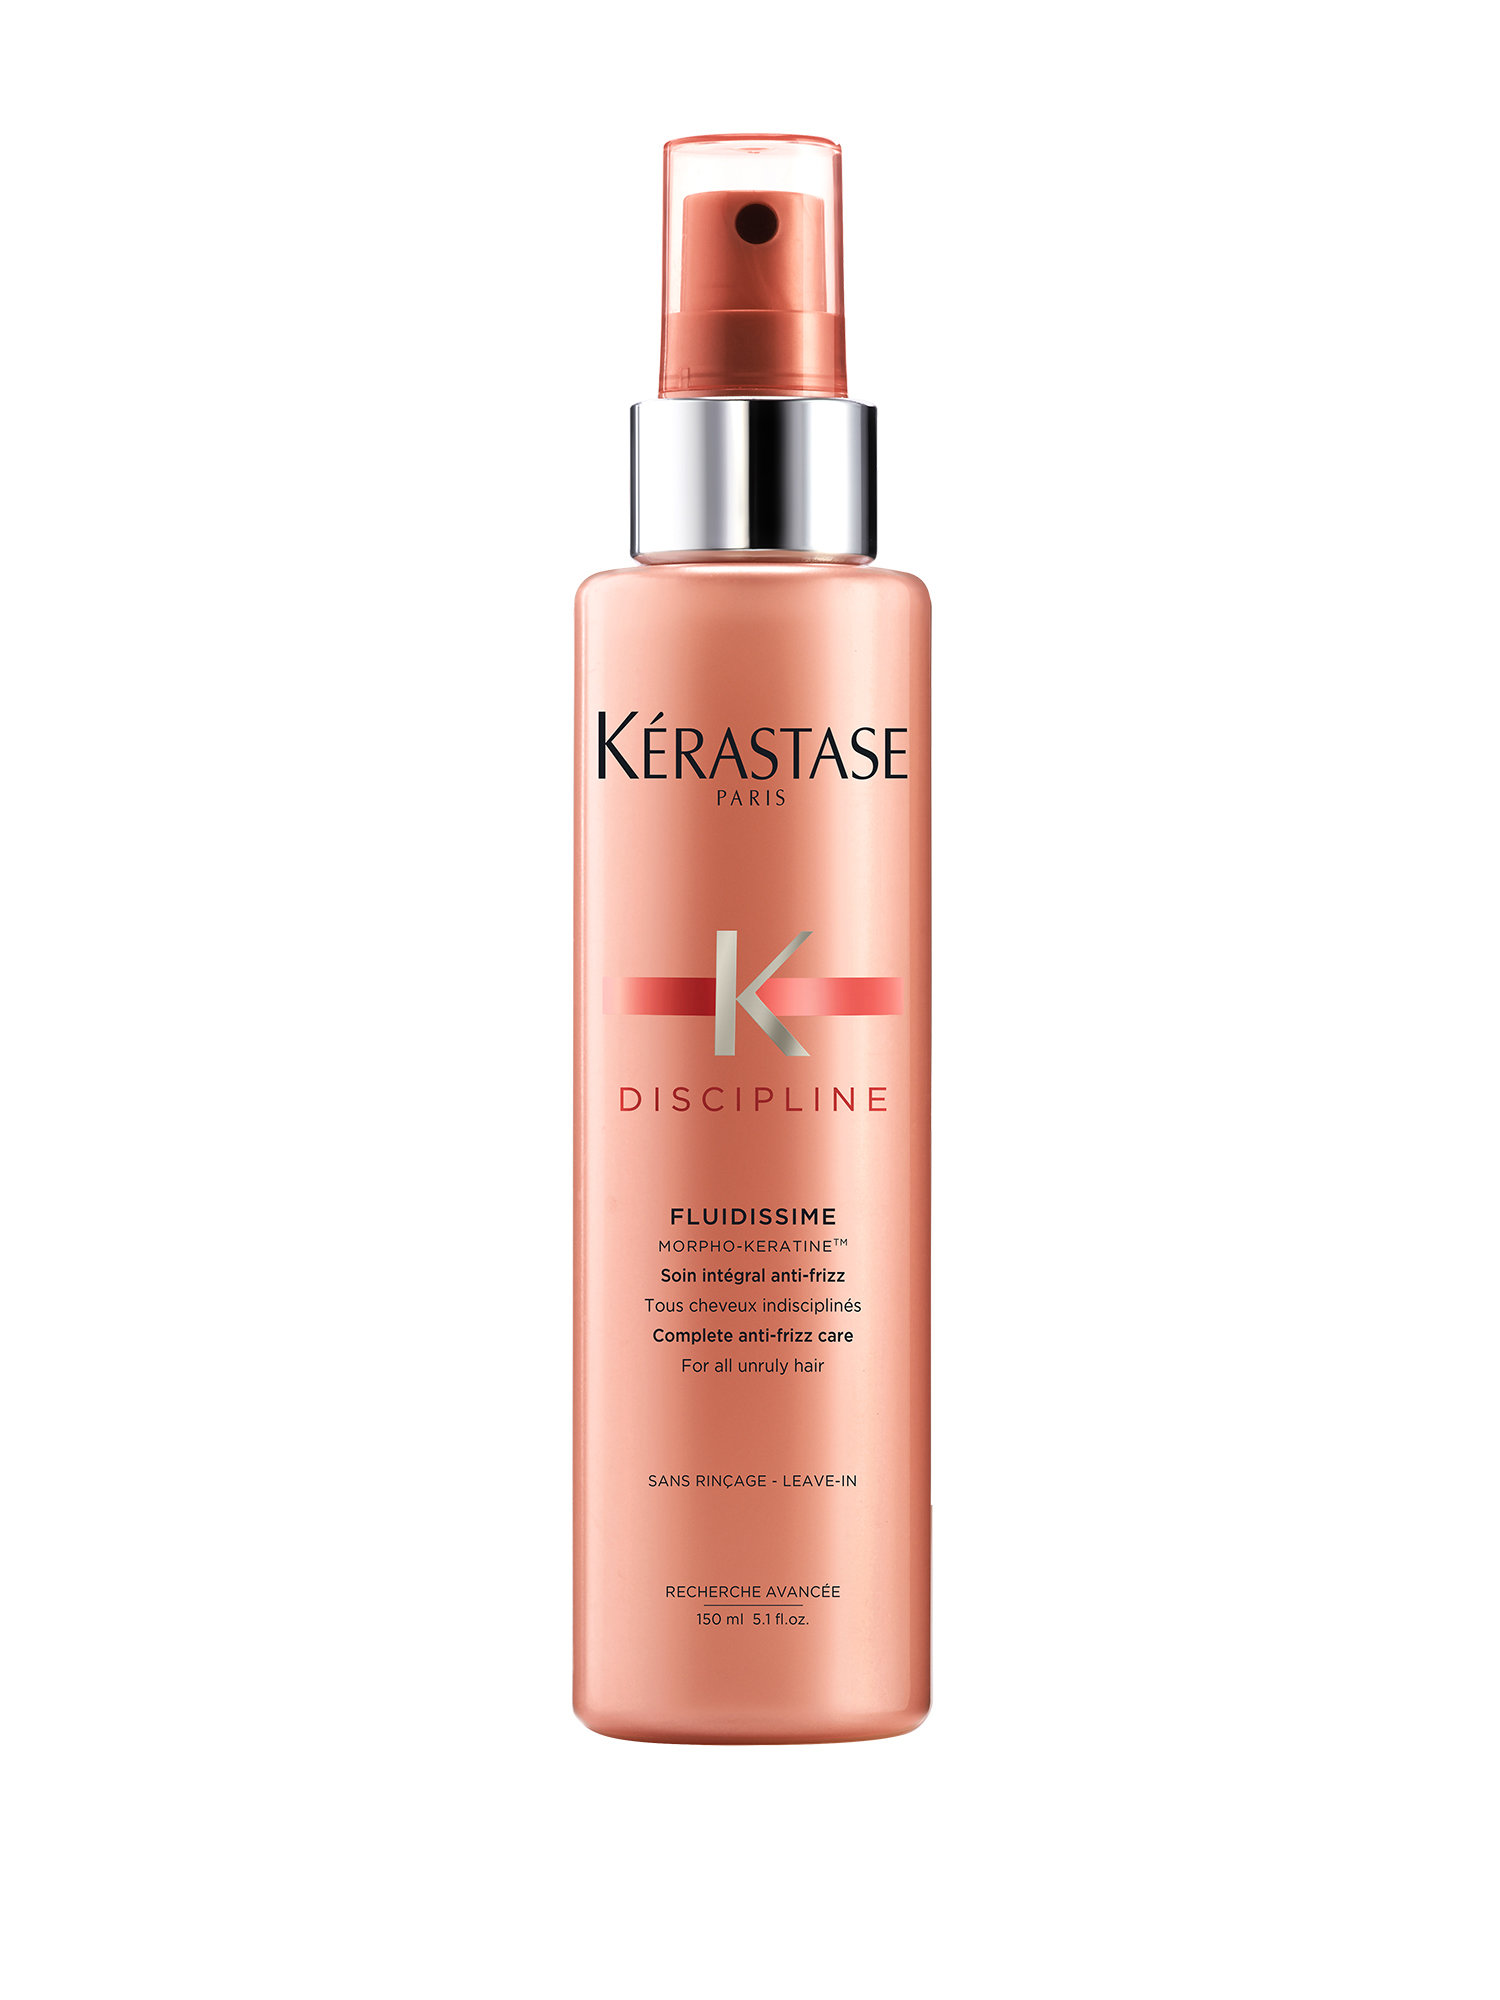 Kérastase Fluidissime Discipline 150 ml | Spray Tratamiento Anti-frizz E1044000